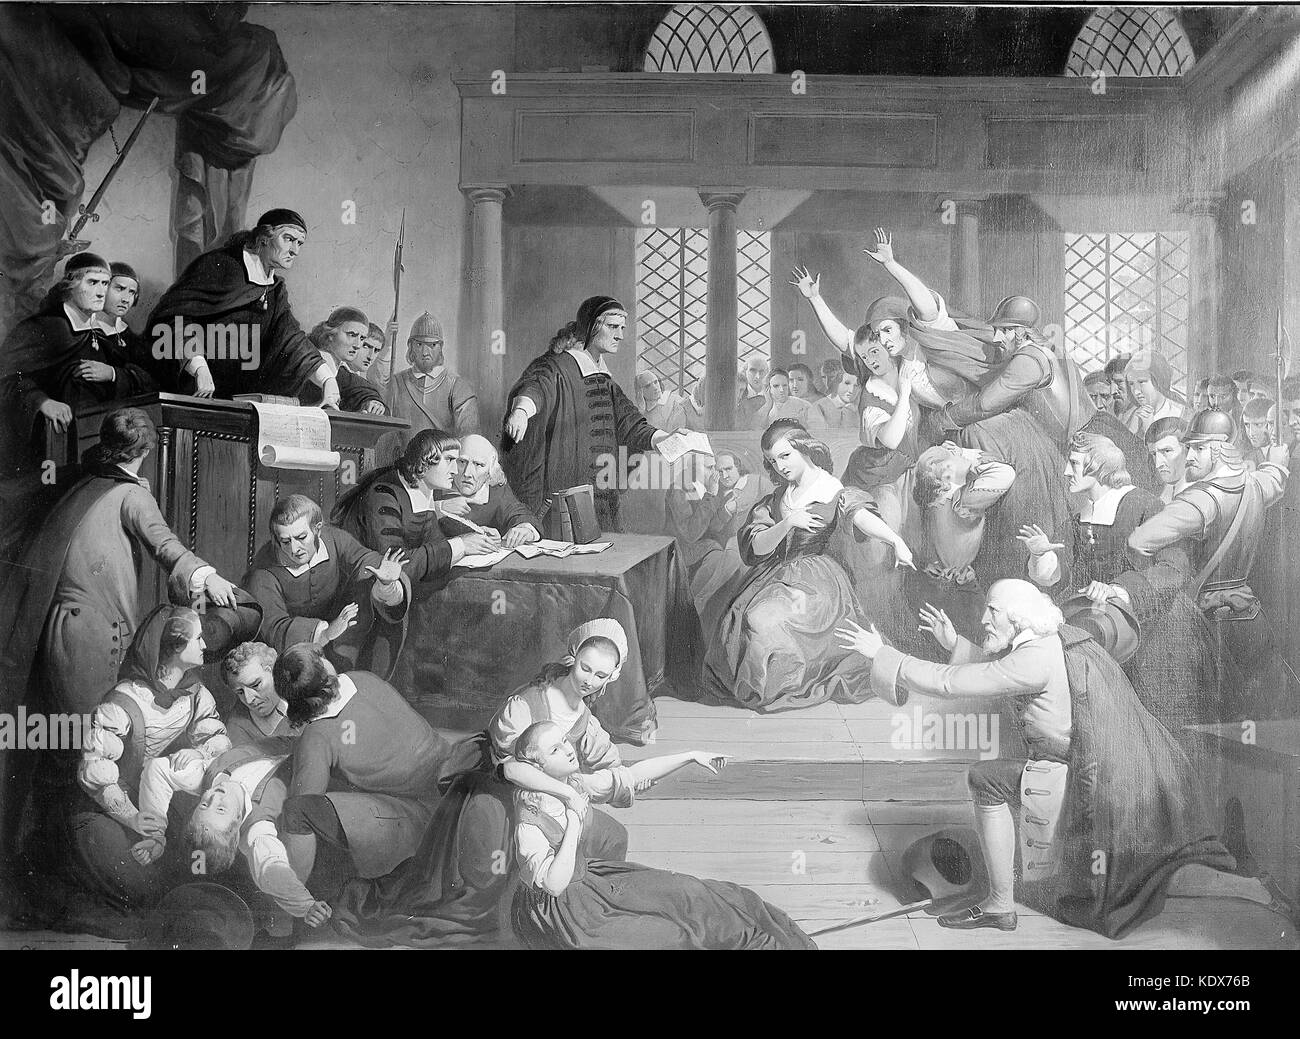 salam witch trials The infamous salem witch trials began during the spring of 1692, after a group of young girls in salem village, massachusetts, claimed to be possessed by the devil and accused several local women.